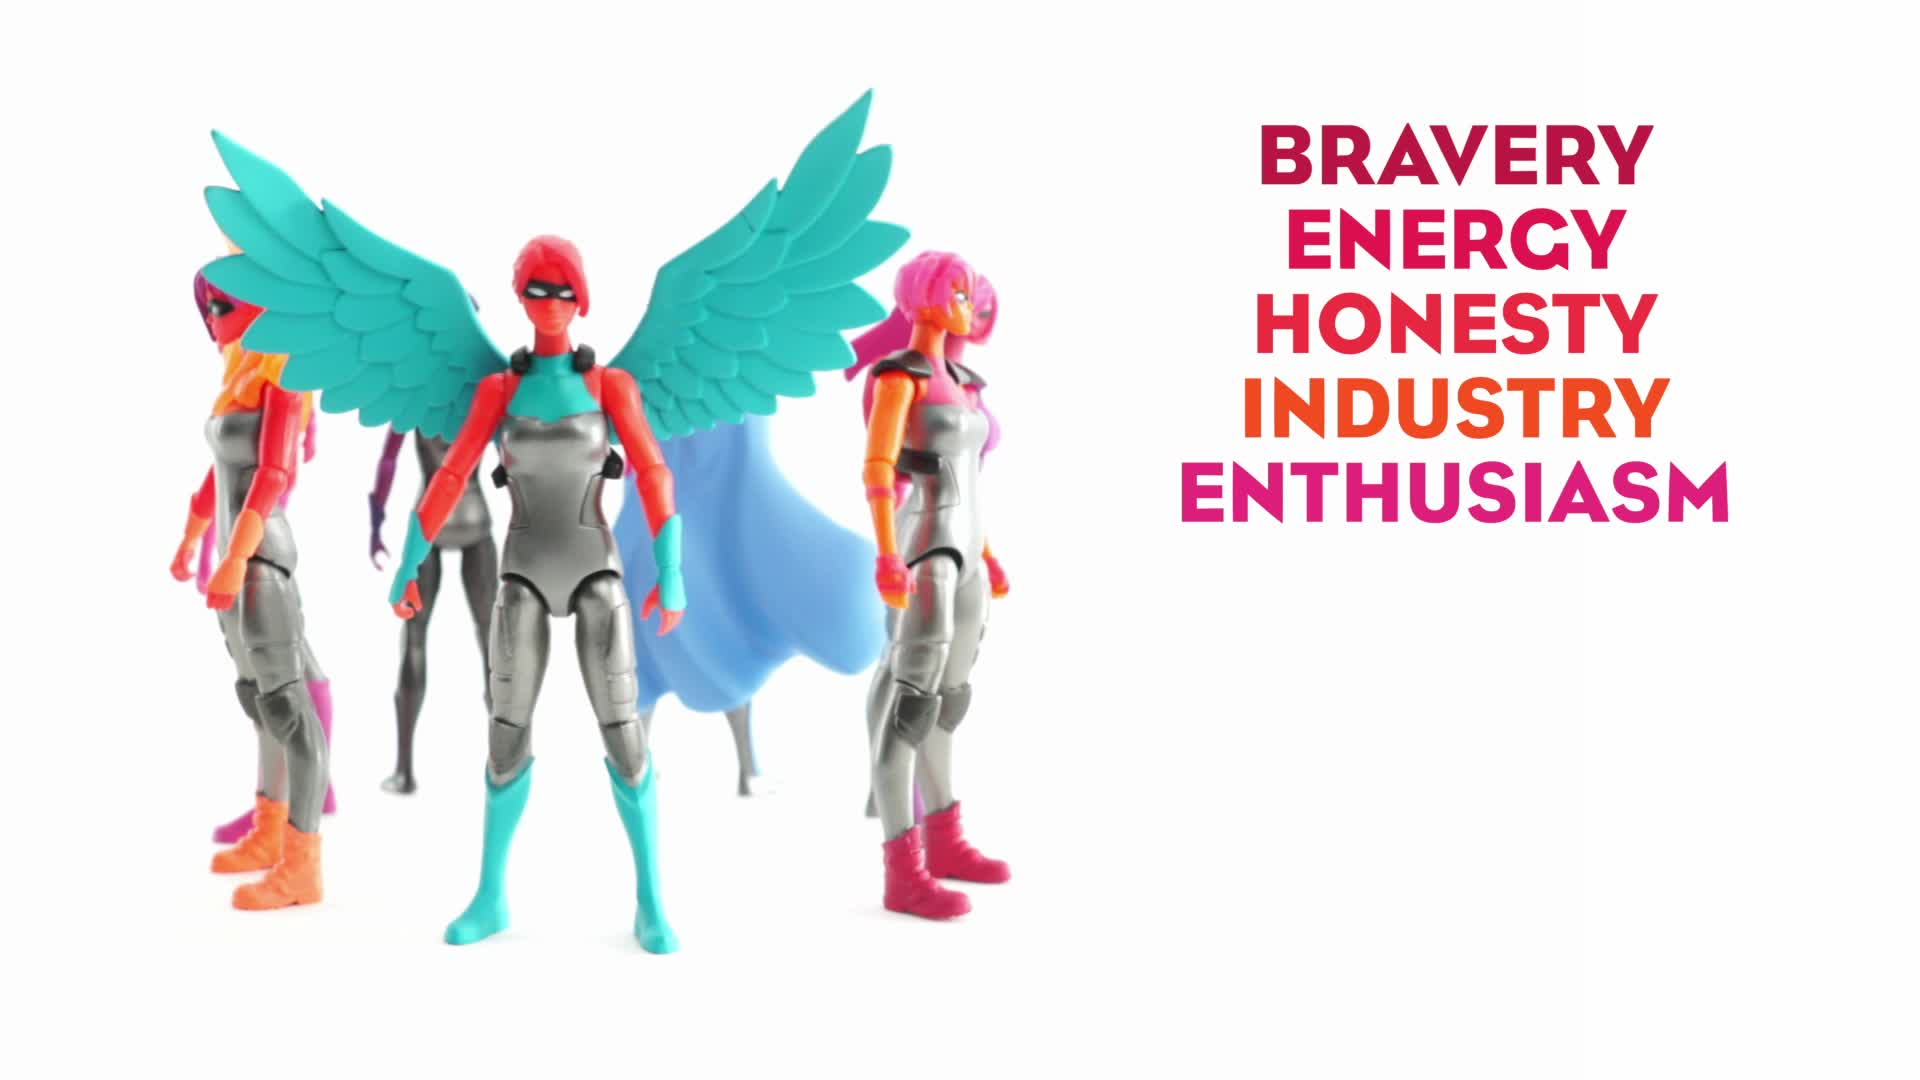 IAmElemental Series 1/Courage Female Action Figures: Series 1/Courage is IAmElemental's first series of seven 4-inch articulated action figures representing Bravery, Energy, Honesty, Industry, Enthusiasm, Persistence and Fear.  Figures are available in select retail stores and at IAmElemental.com.